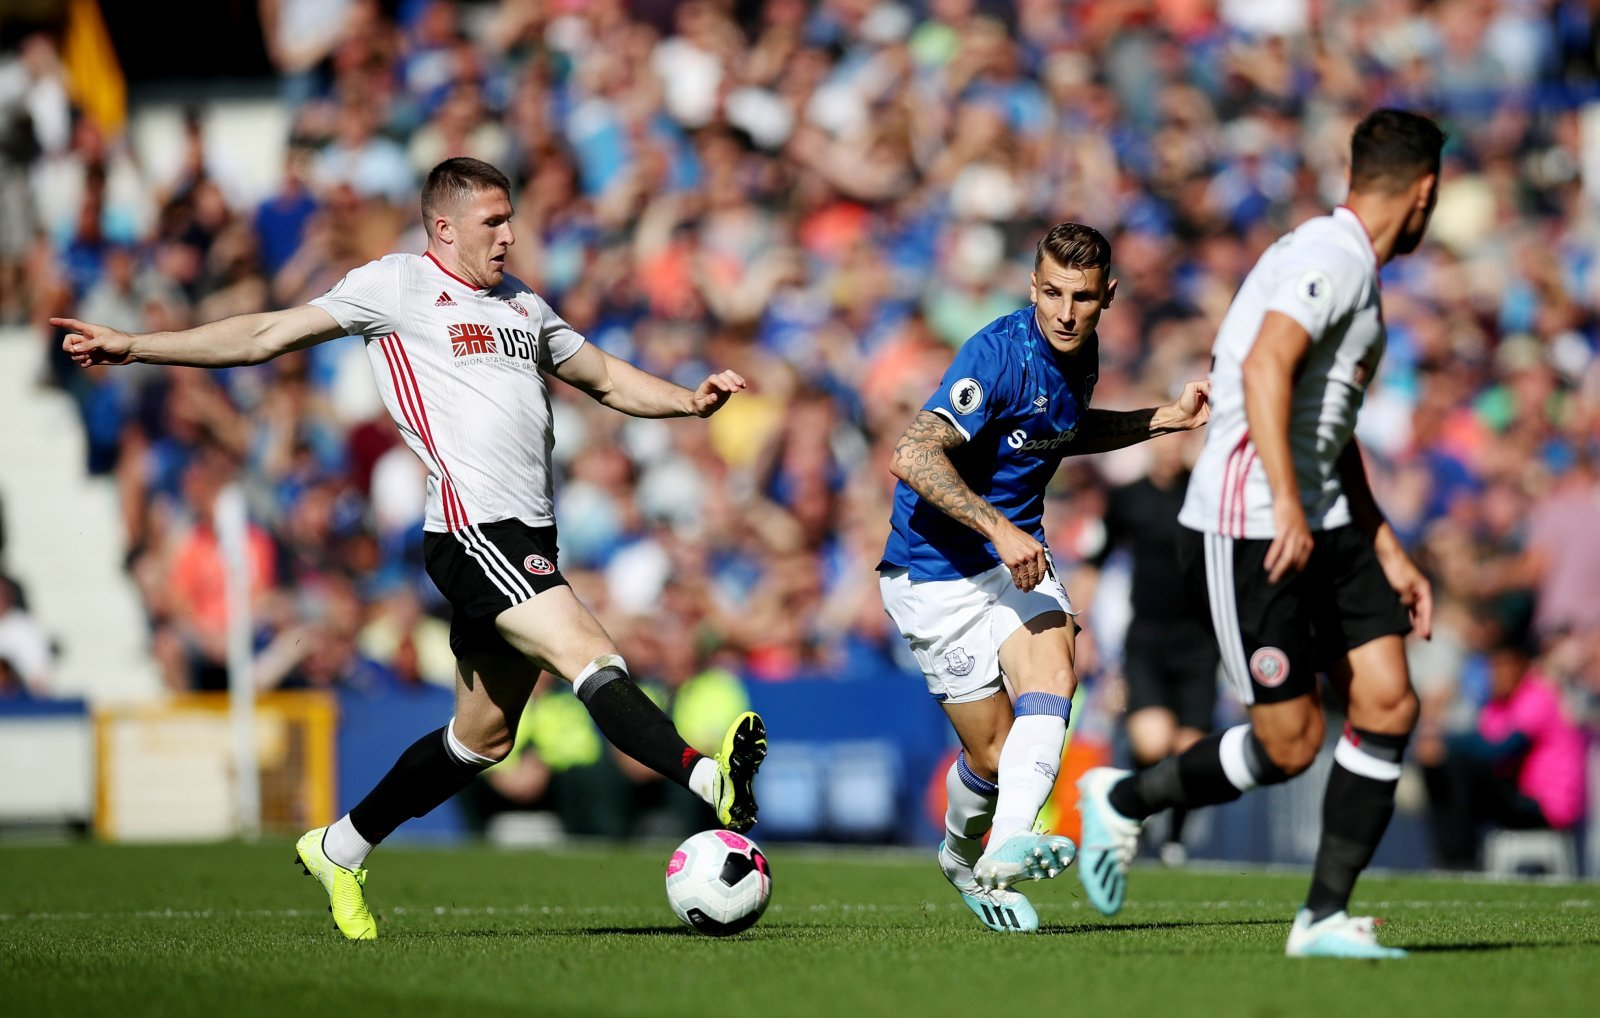 Sheffield United: Fans react to phenomenal John Lundstram touch against Arsenal